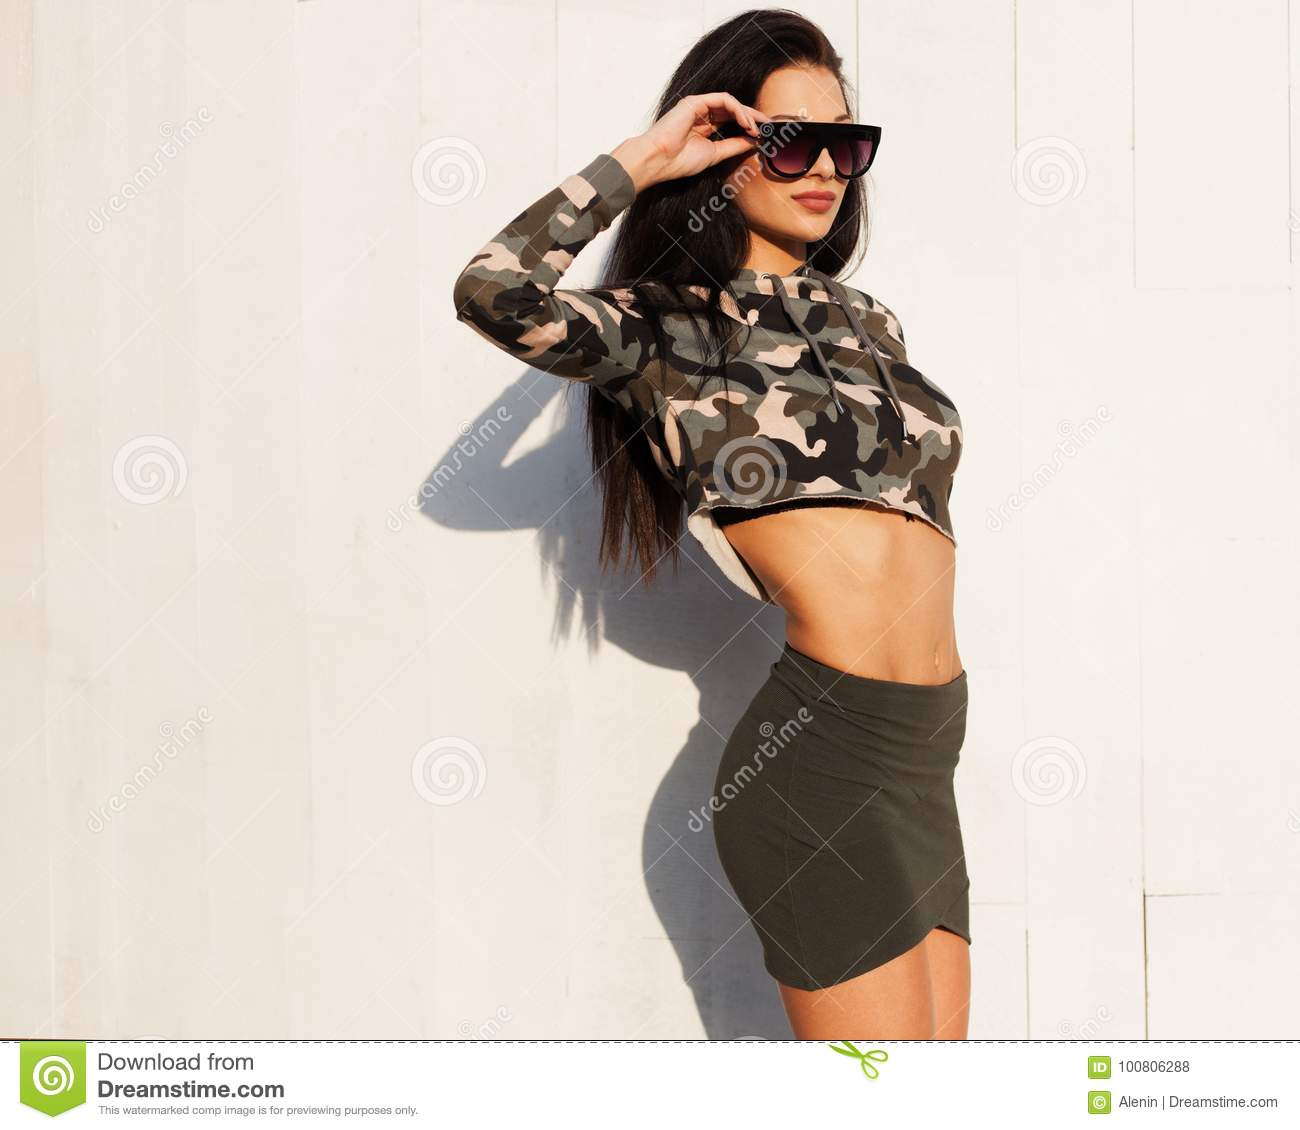 d96b2c129e1cb Incredible brunette girl in a short skirt and khaki trending camouflage  outfit posing in a white